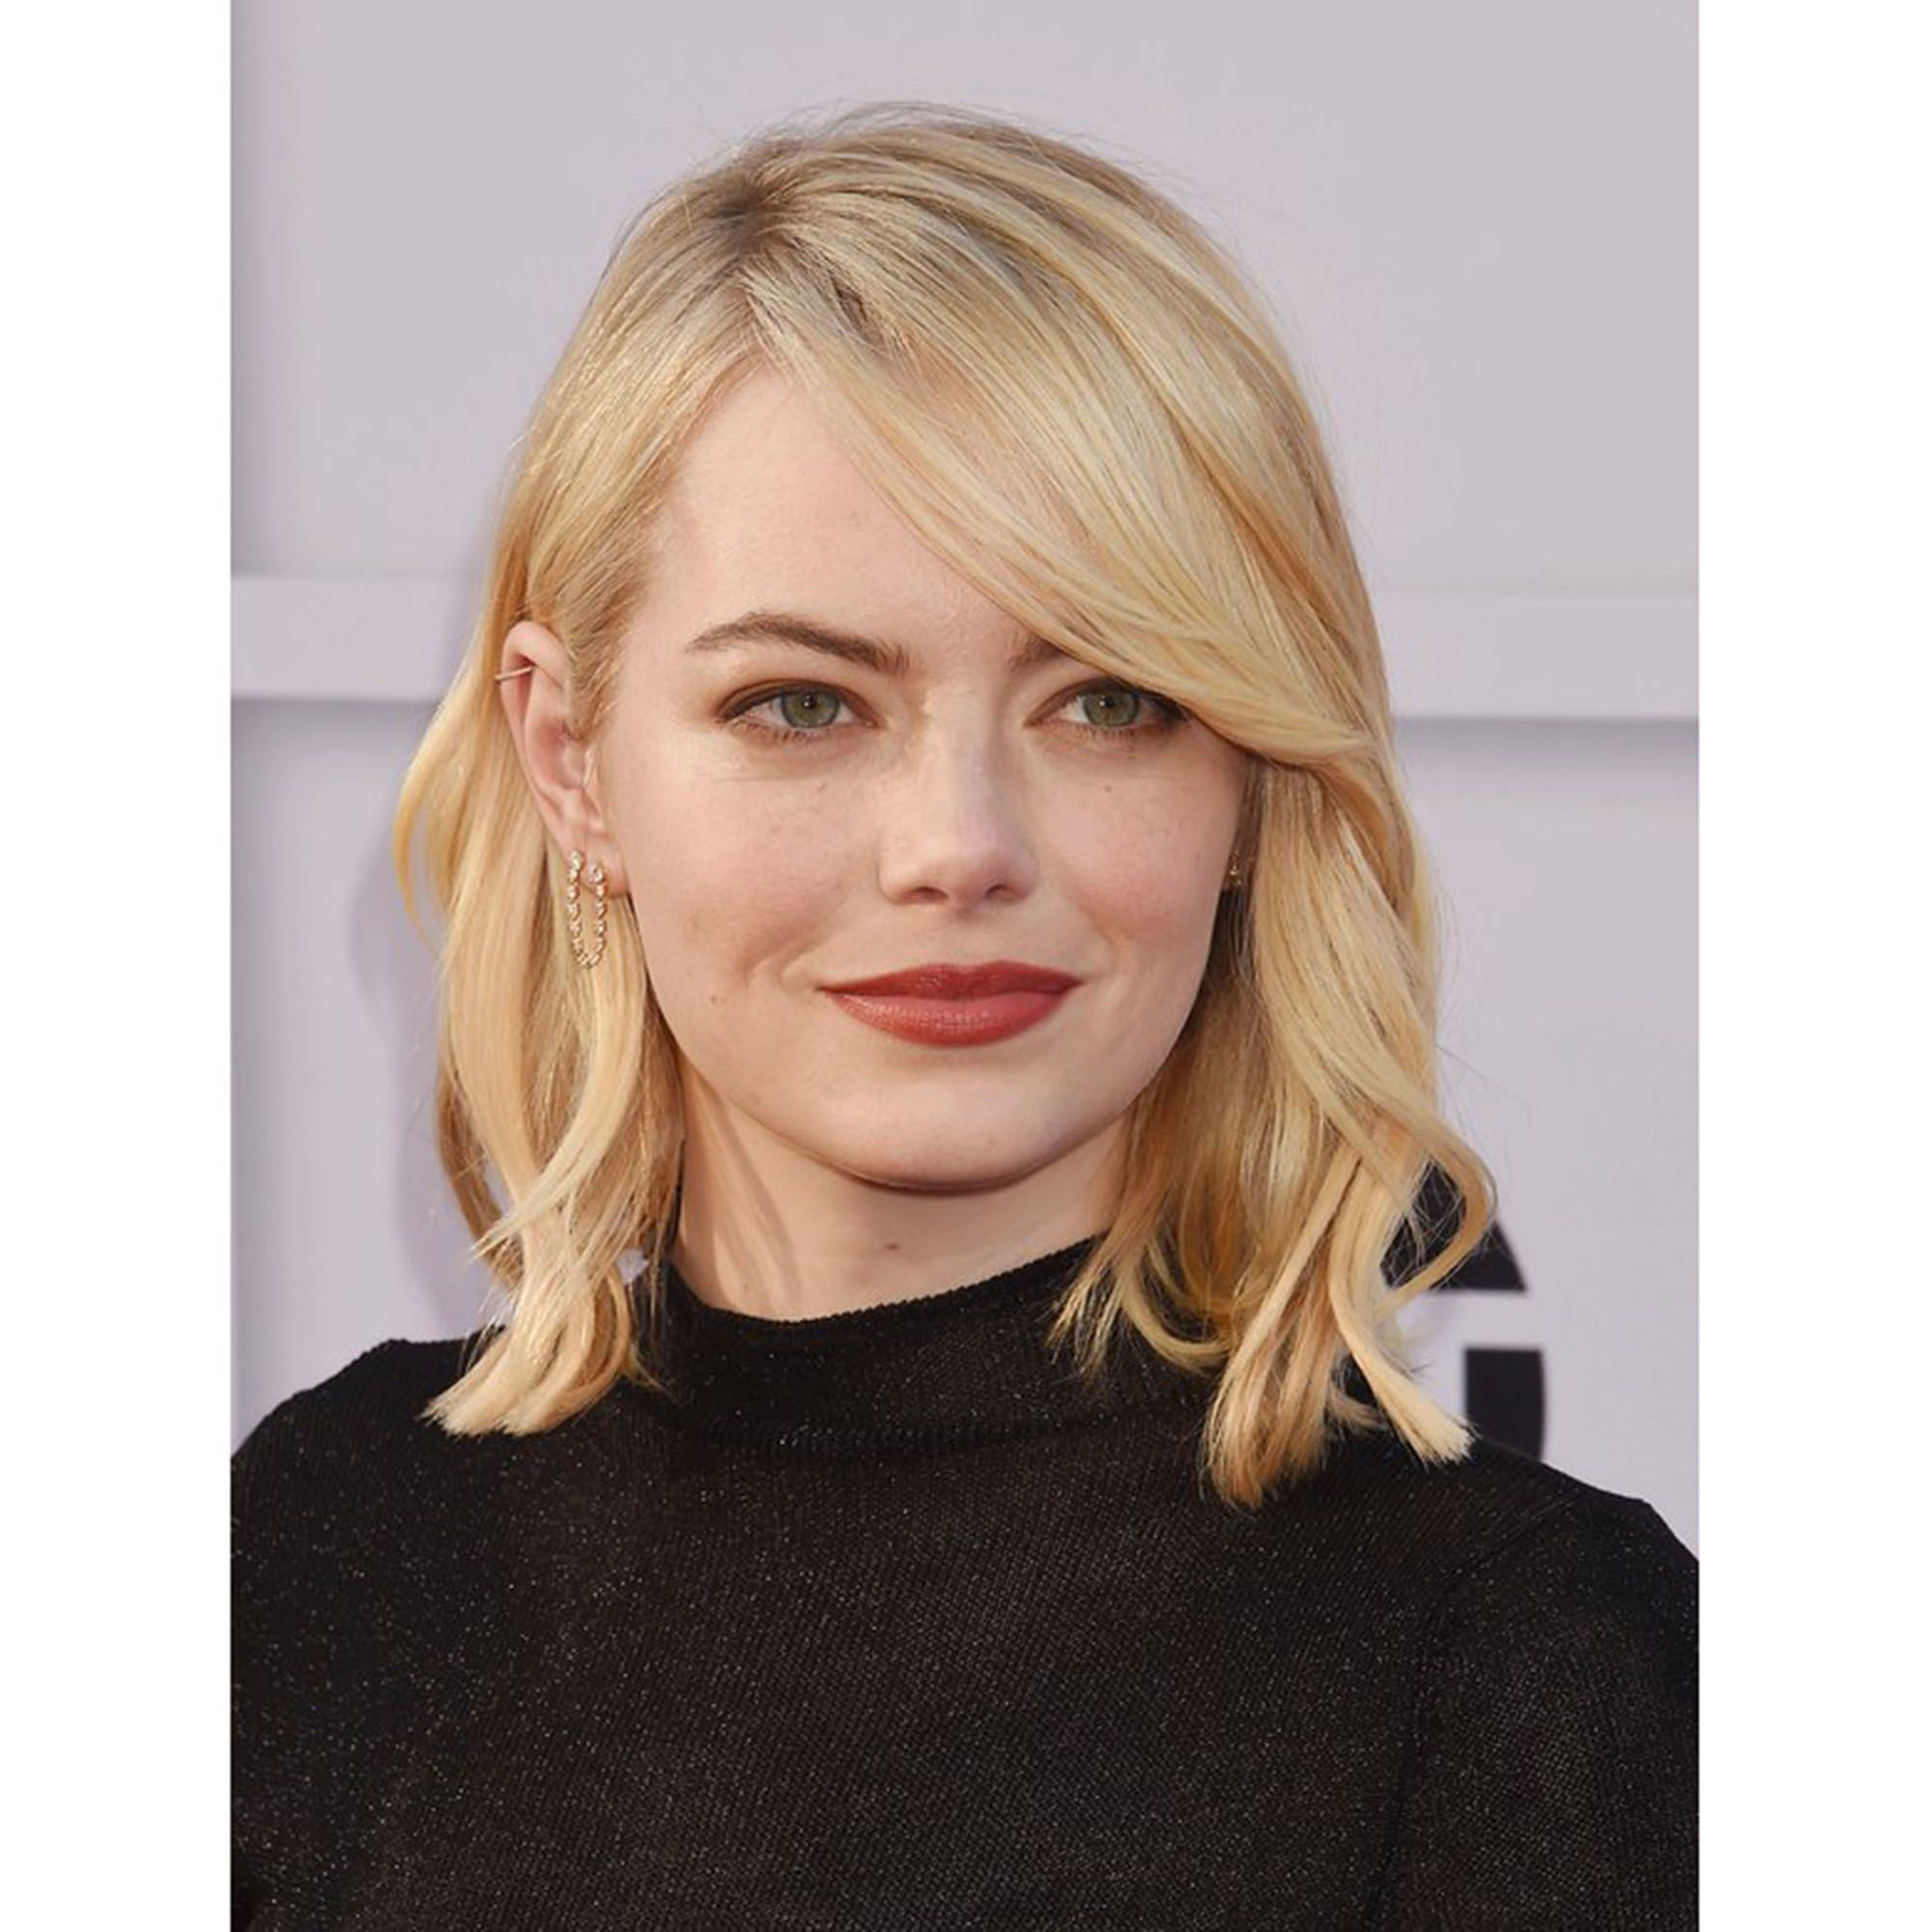 The 9 Best Haircuts For Round Faces According To Stylists Hair